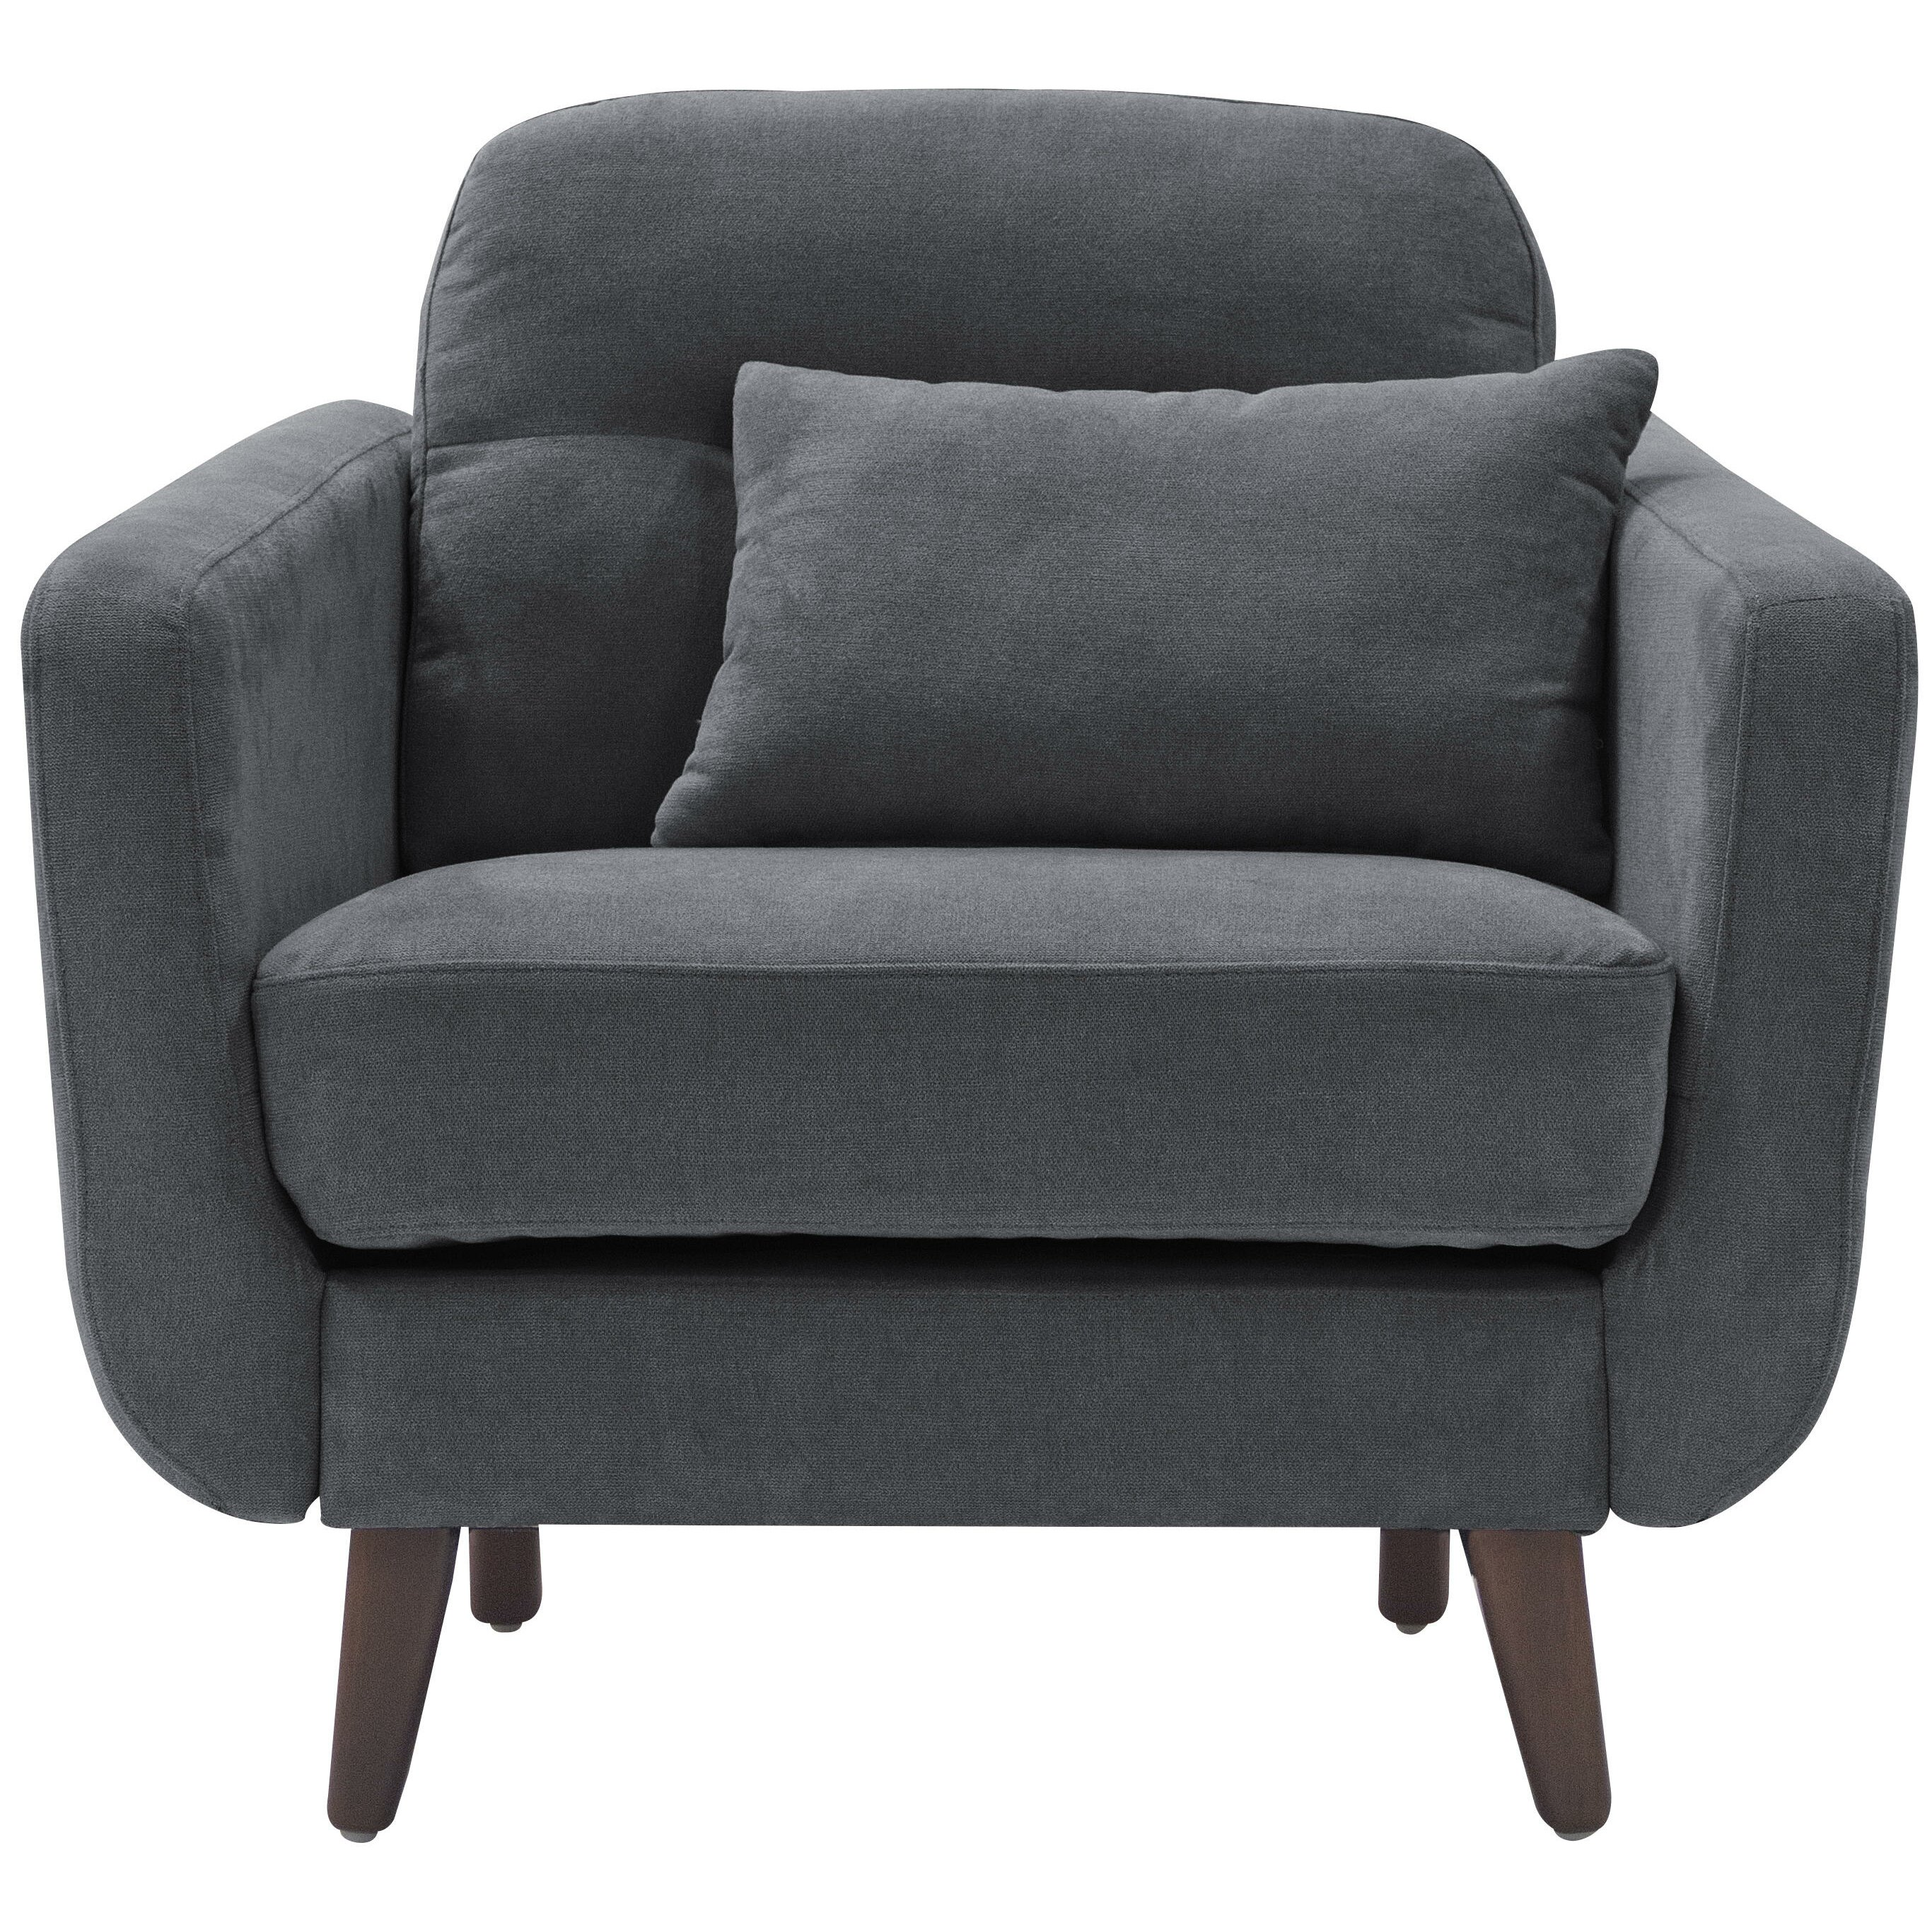 Serta at Home Sierra Arm Chair | Wayfair